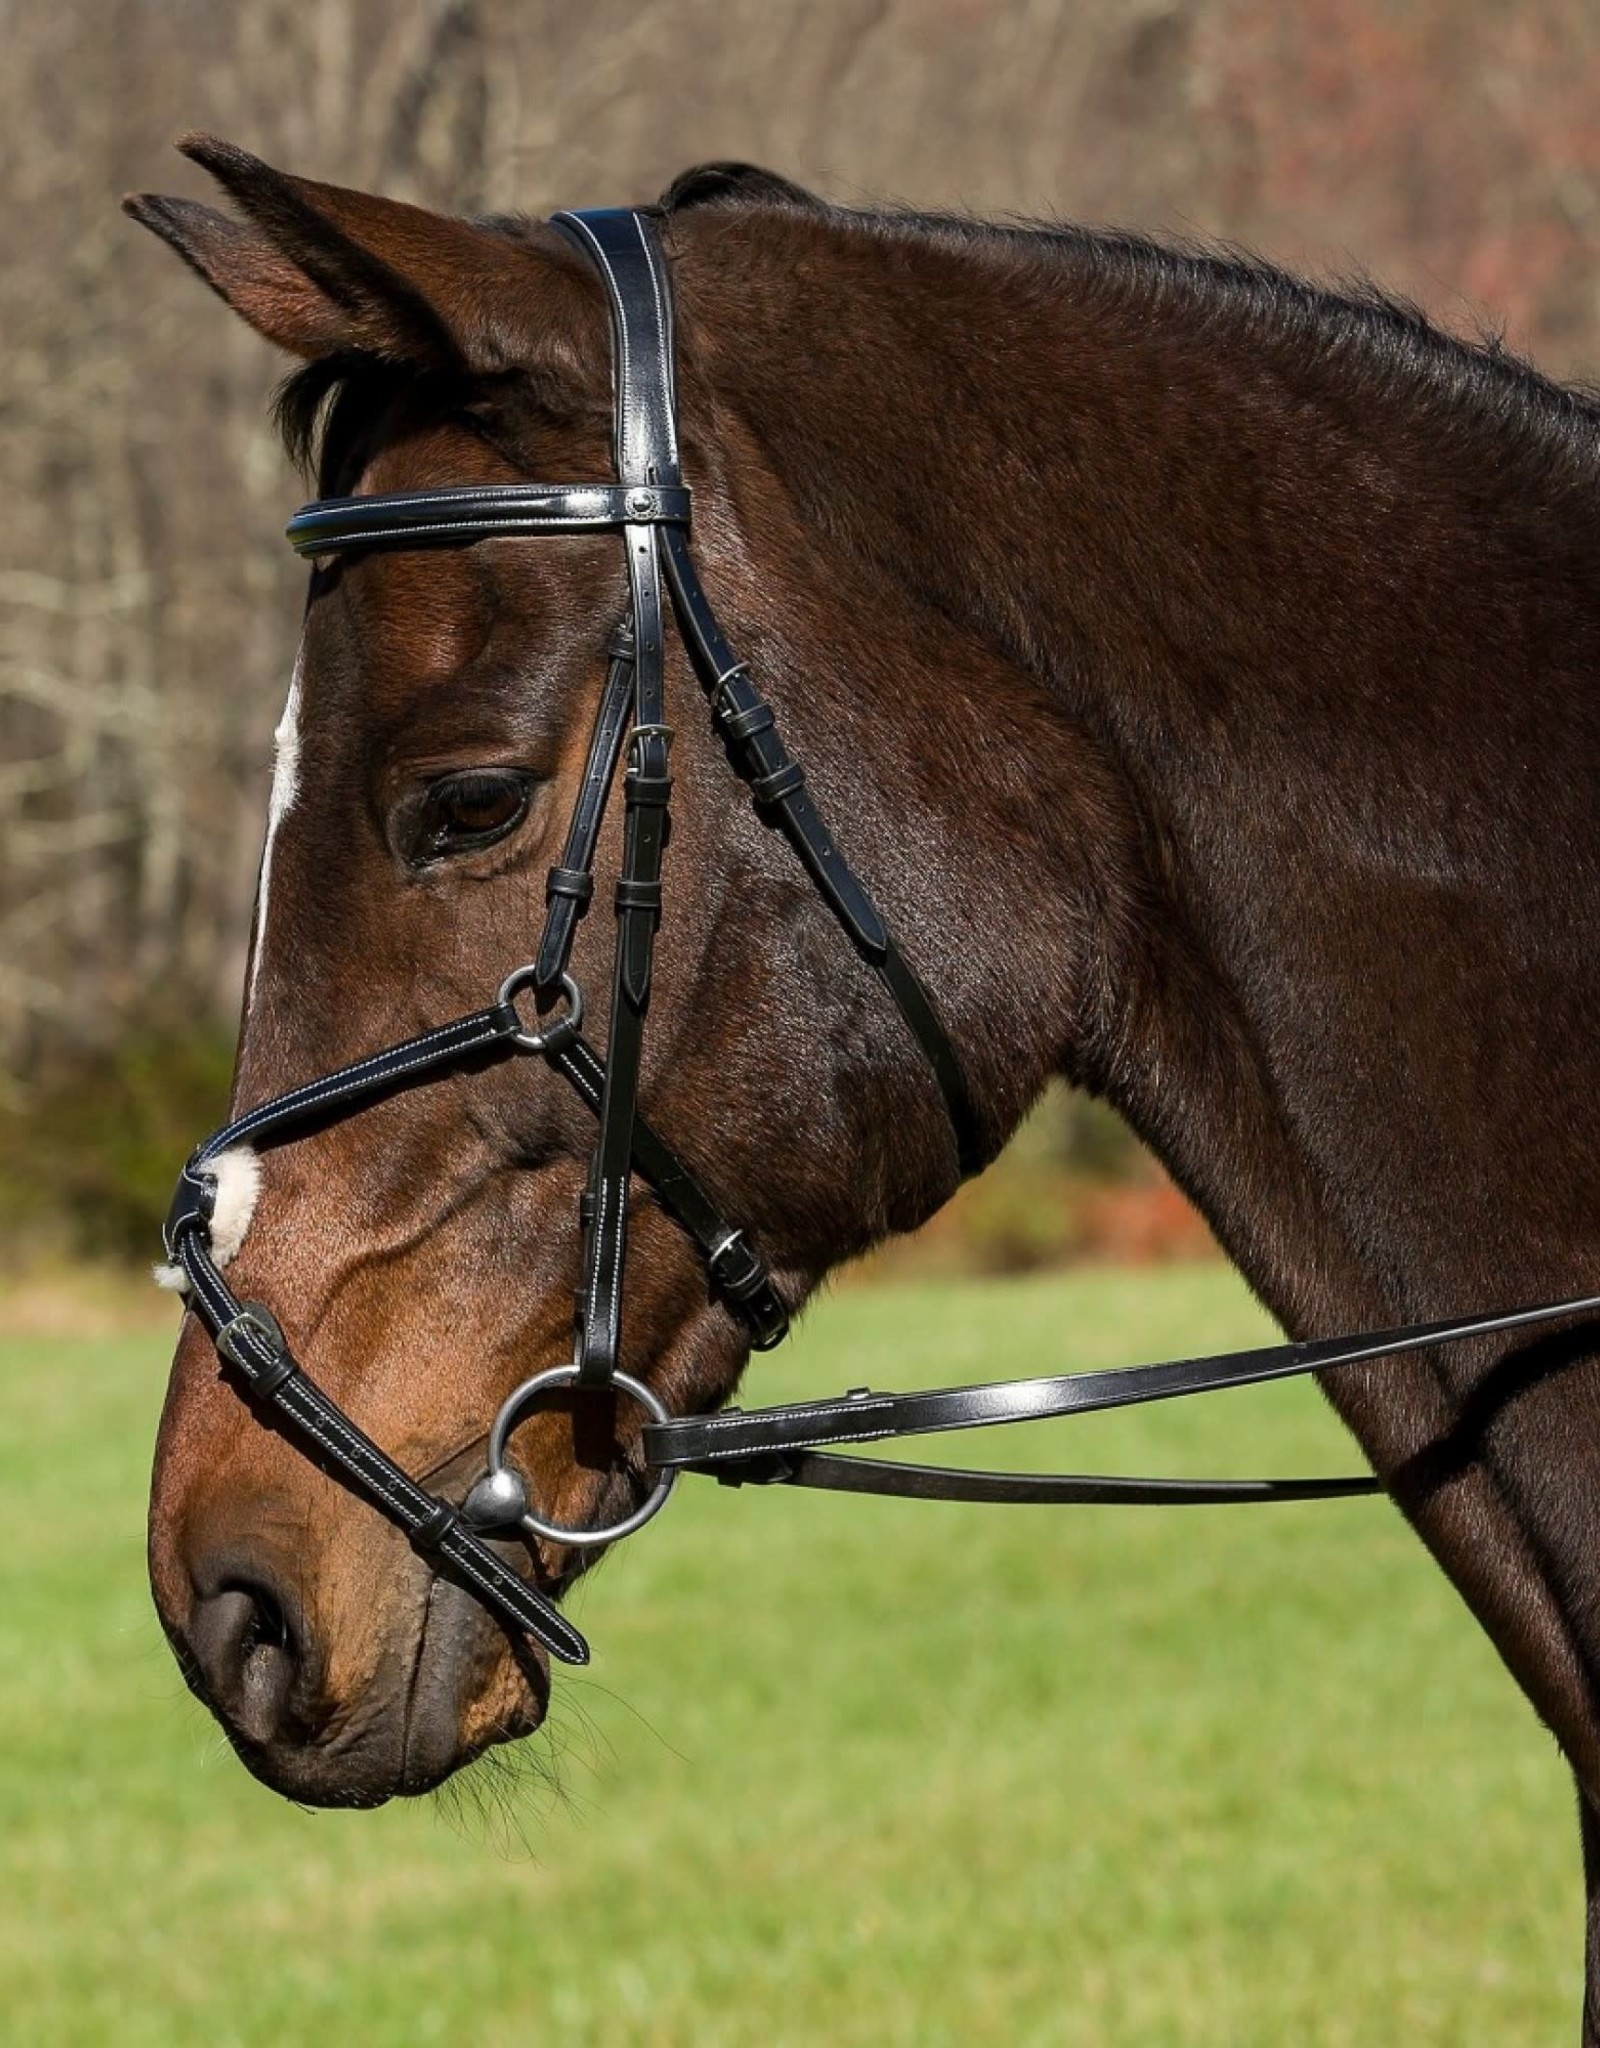 HDR PRO MONO CROWN RAISED FIGURE 8 BRIDLE WITH RUBBER GRIP REINS